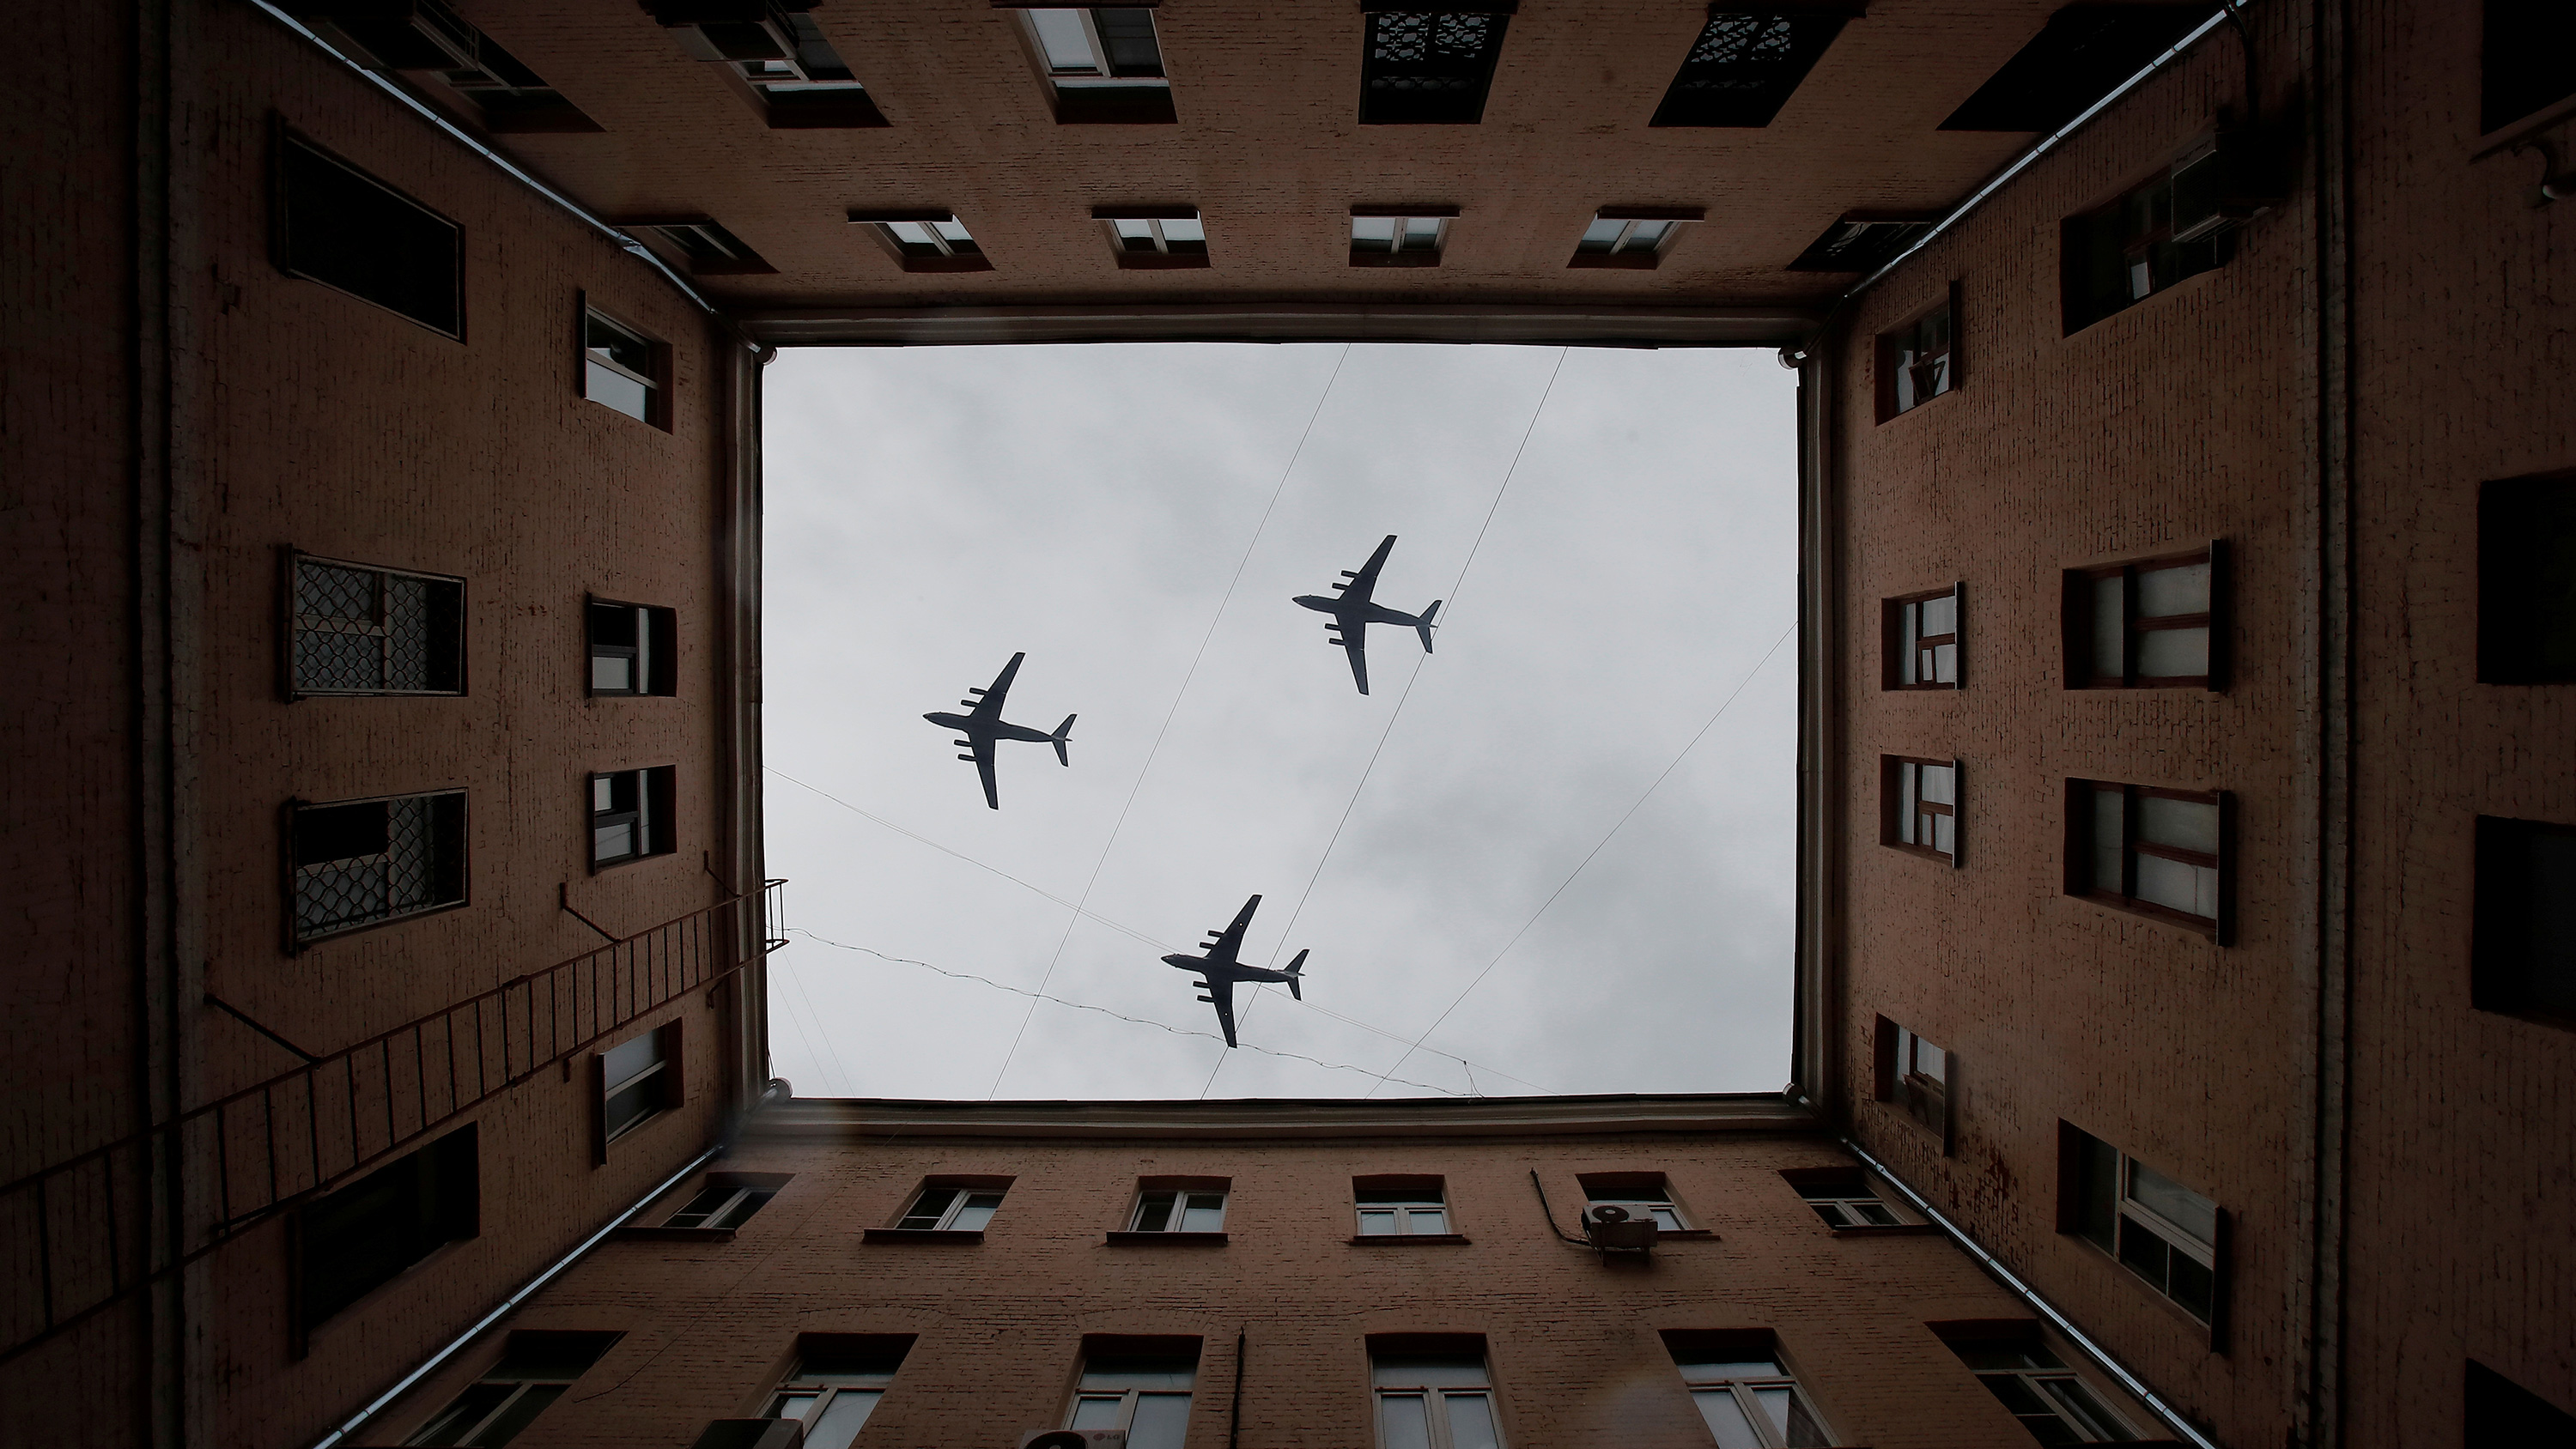 The striking image shows three planes photographed looking up througg the open courtyard of a large apartment-style building.